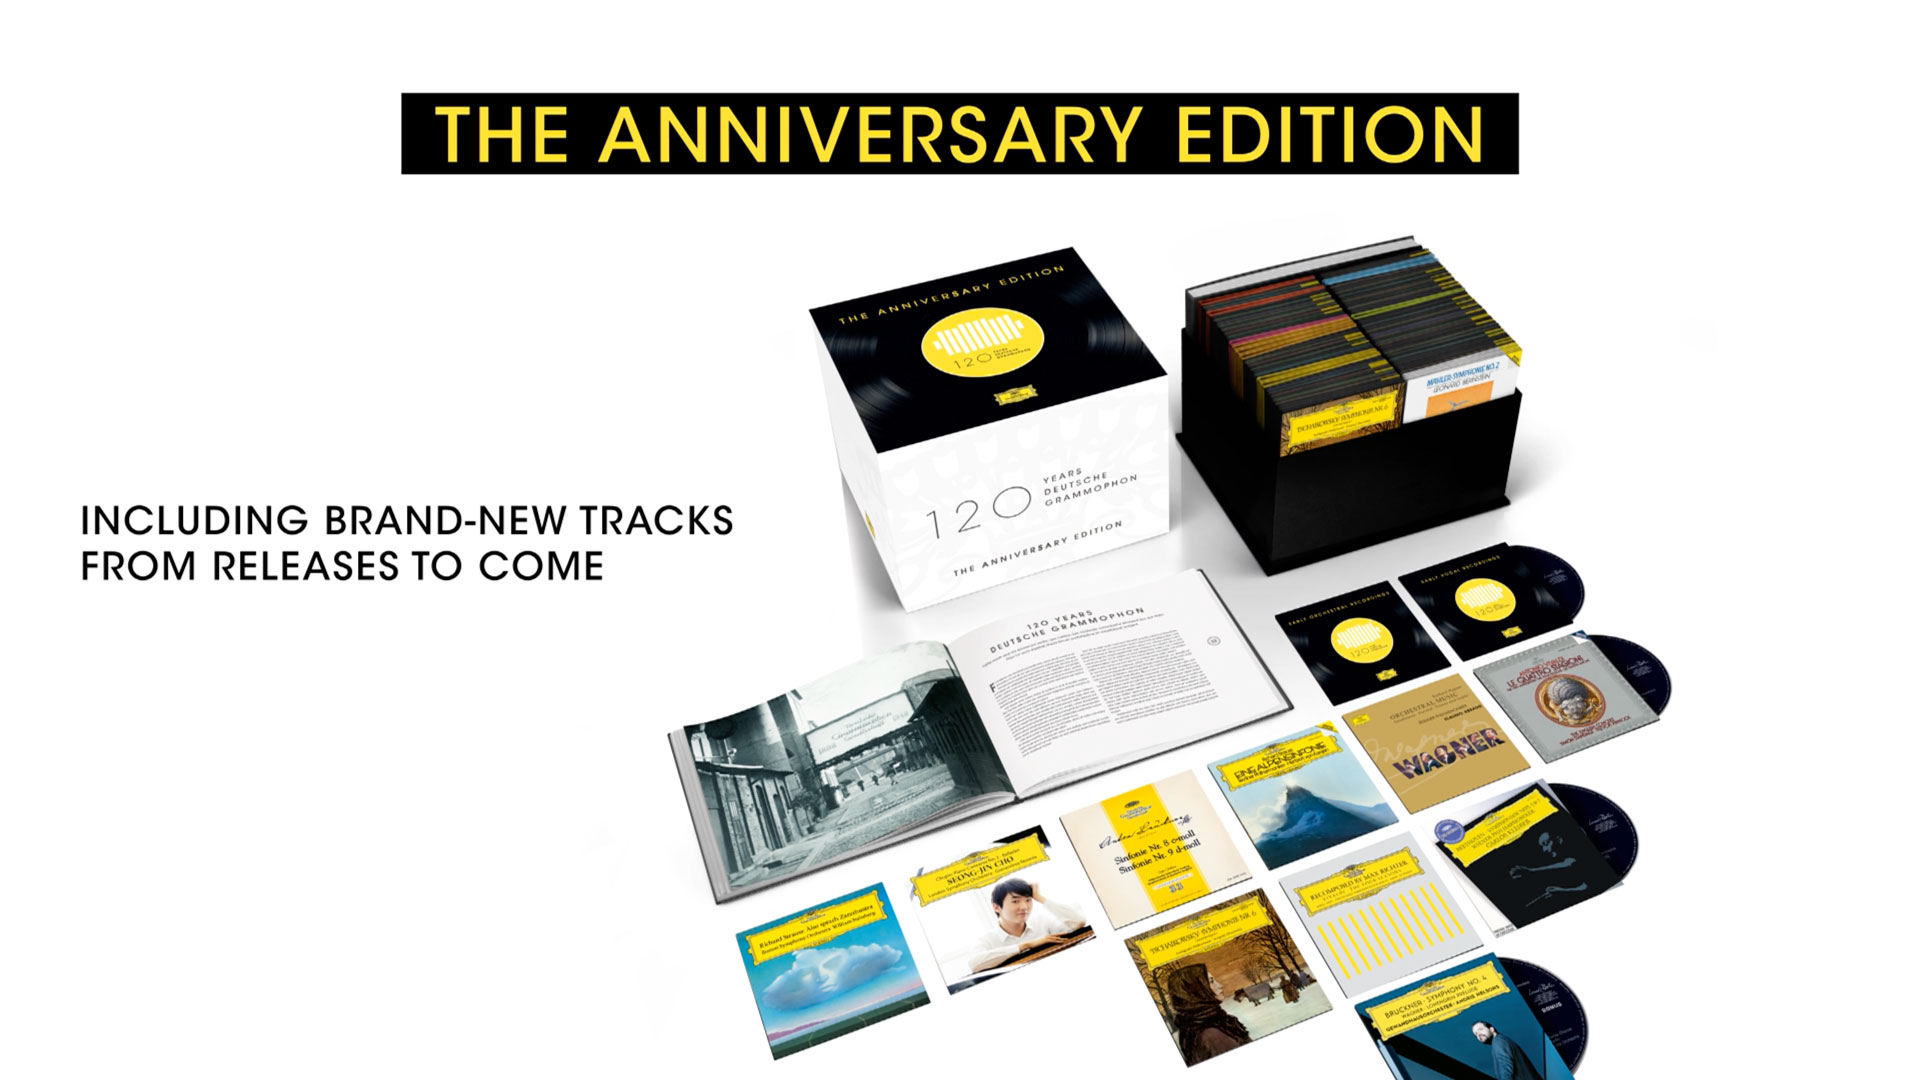 Deutsche Grammophon published a special edition in honor of their 120. anniversary.